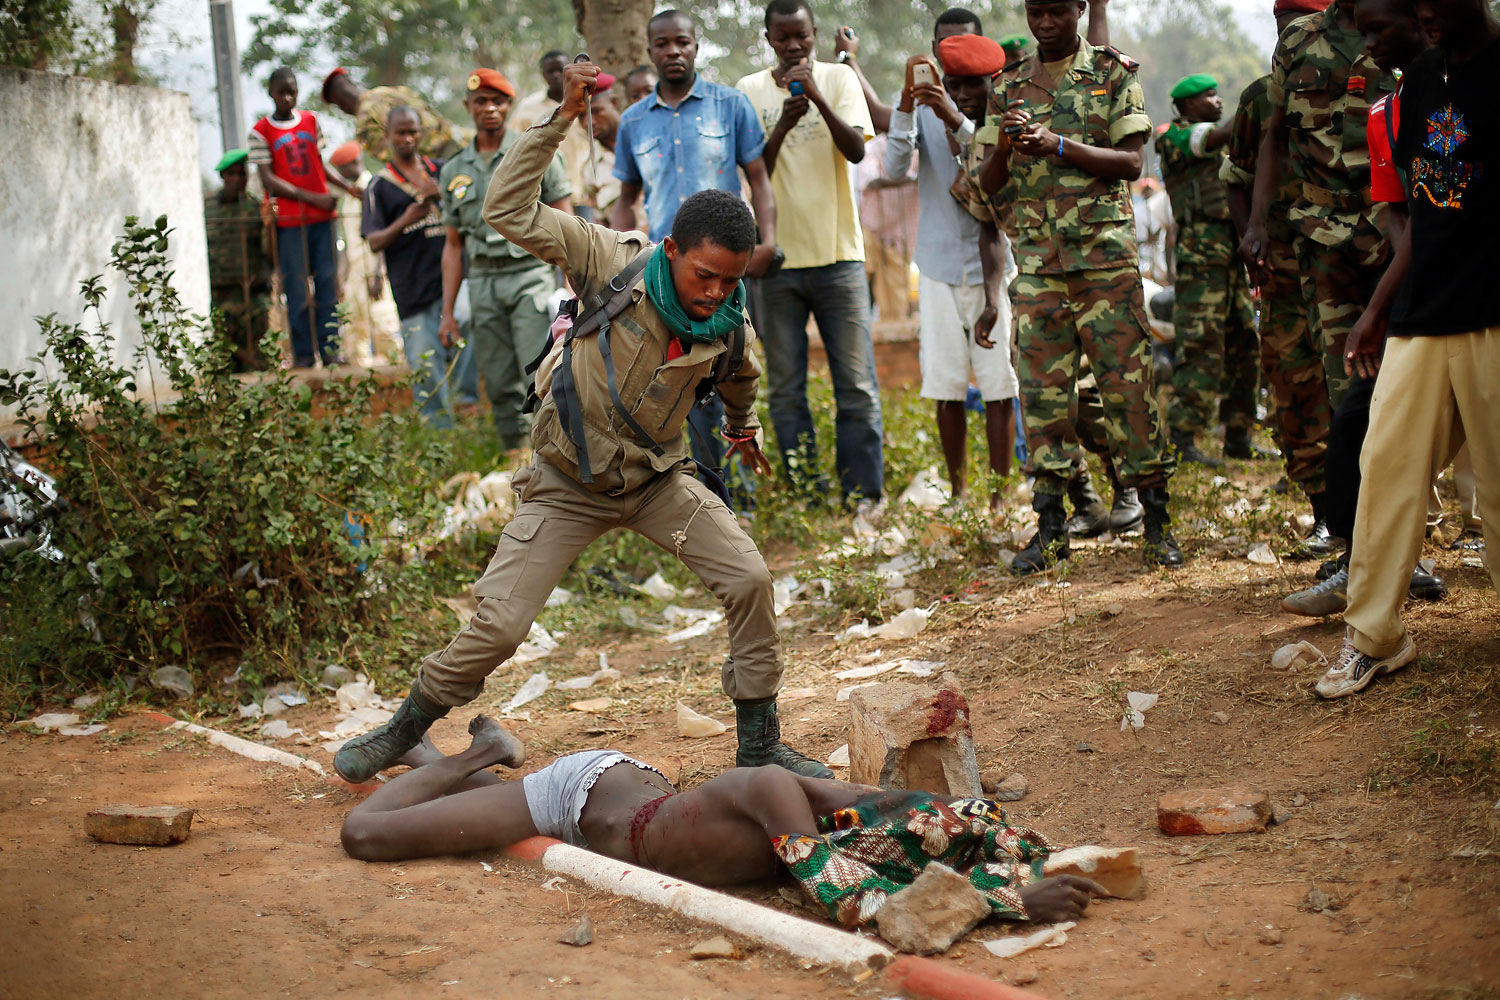 A newly enlisted Central African Armed Forces soldier stabs the lifeless body of a suspected Muslim Seleka militiaman moments after Central African Republic Interim President Catherine Samba-Panza addressed the troops in Bangui, Feb. 5, 2014.